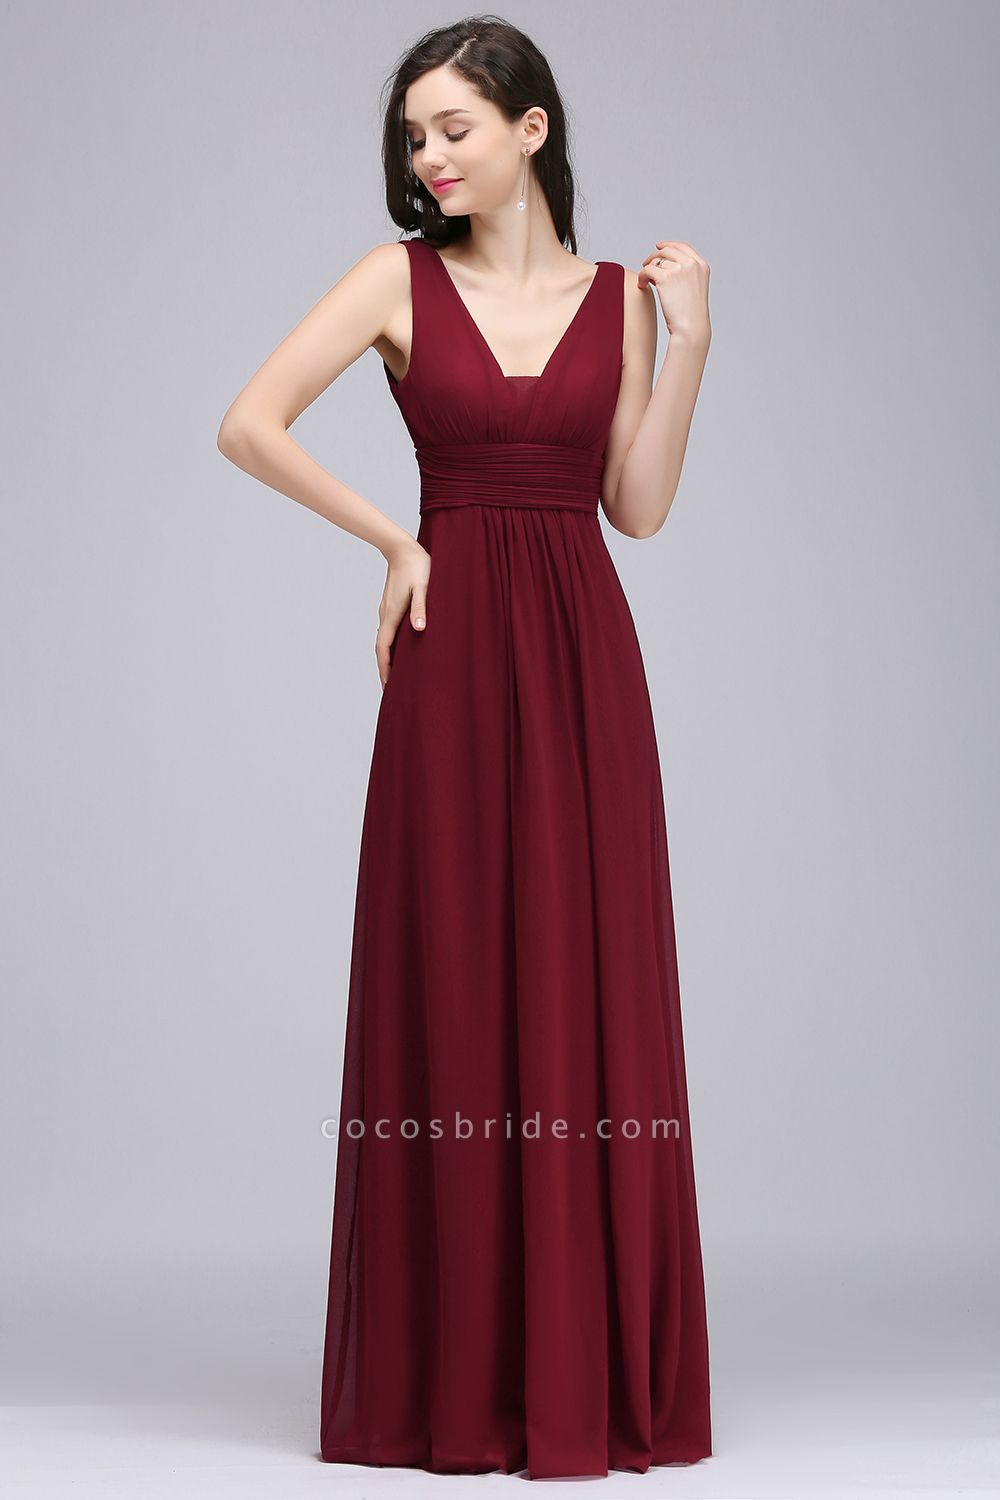 Elegant A-Line Chiffon V-Neck Sleeveless Ruffles Floor-Length Bridesmaid Dresses